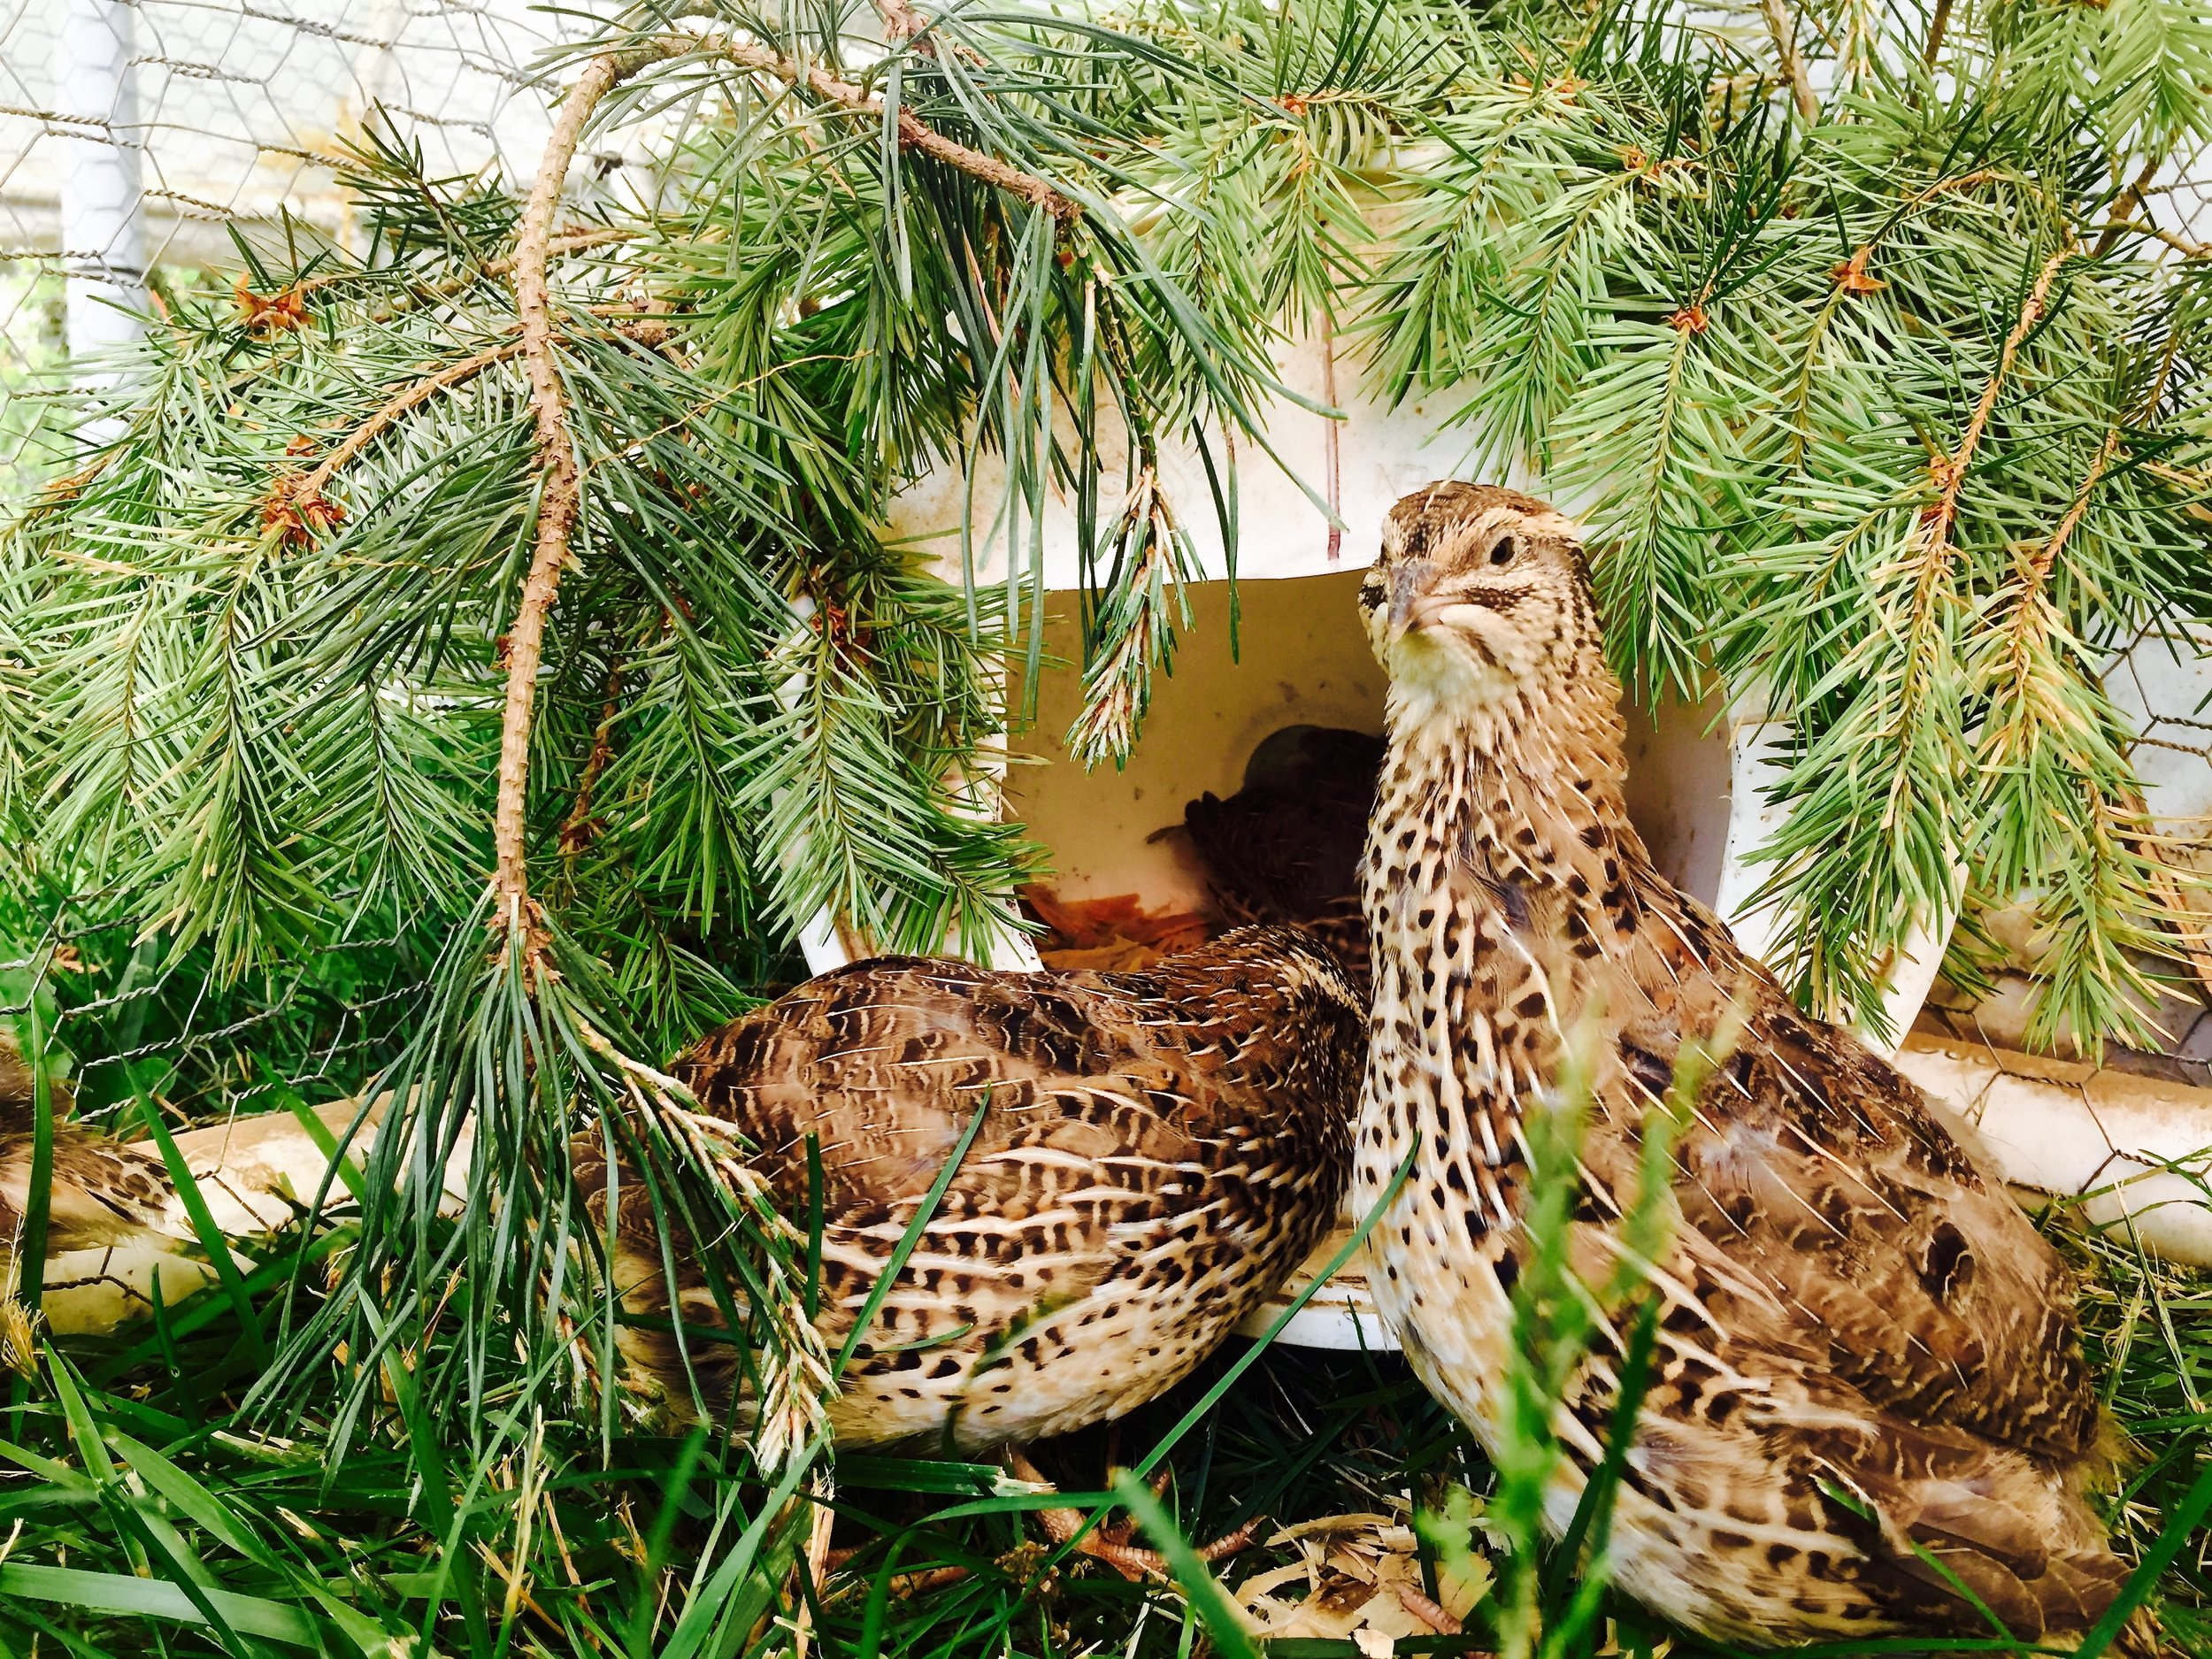 Two Coturnix hens check out their nest box.